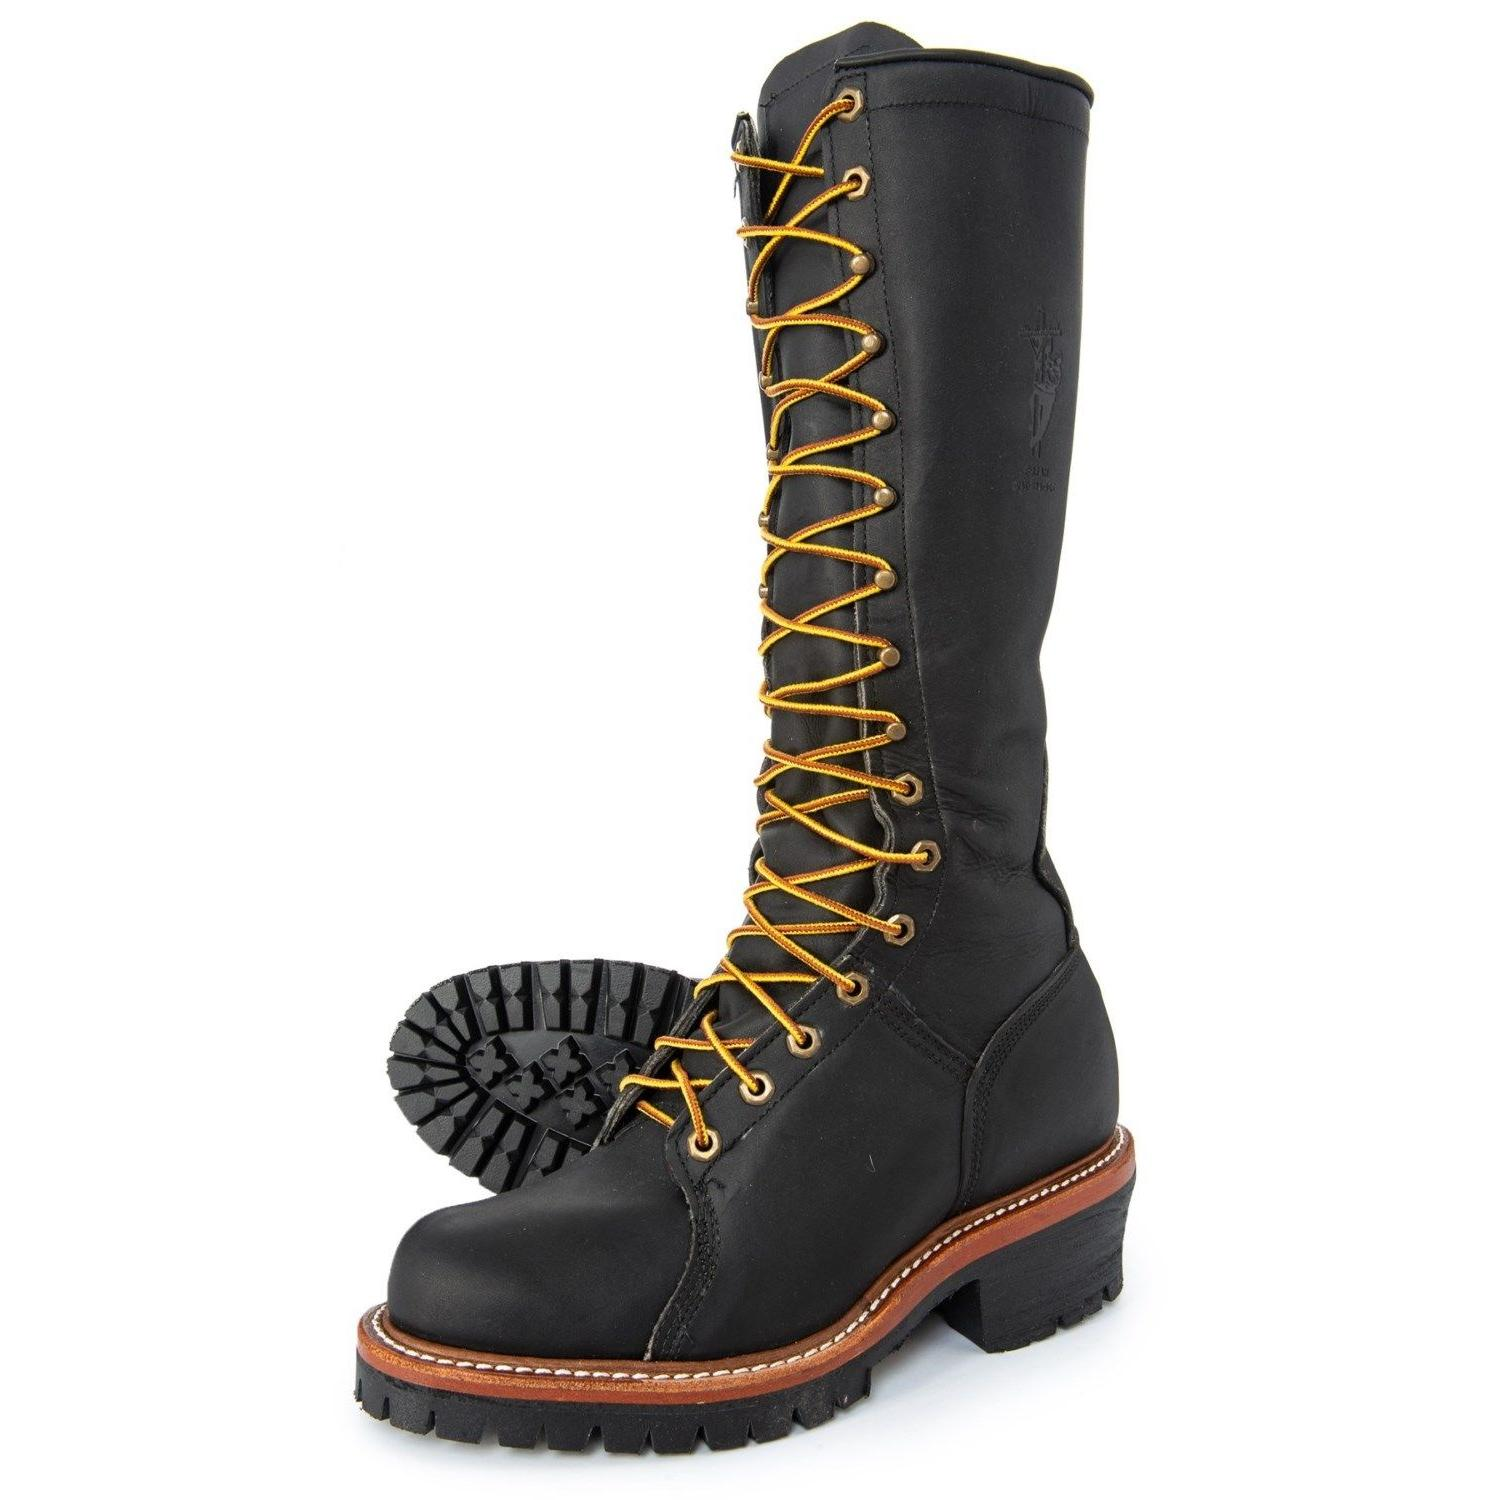 "Chippewa Hall's men's 17"" Lace-up Lineman's Logger Work Moto"